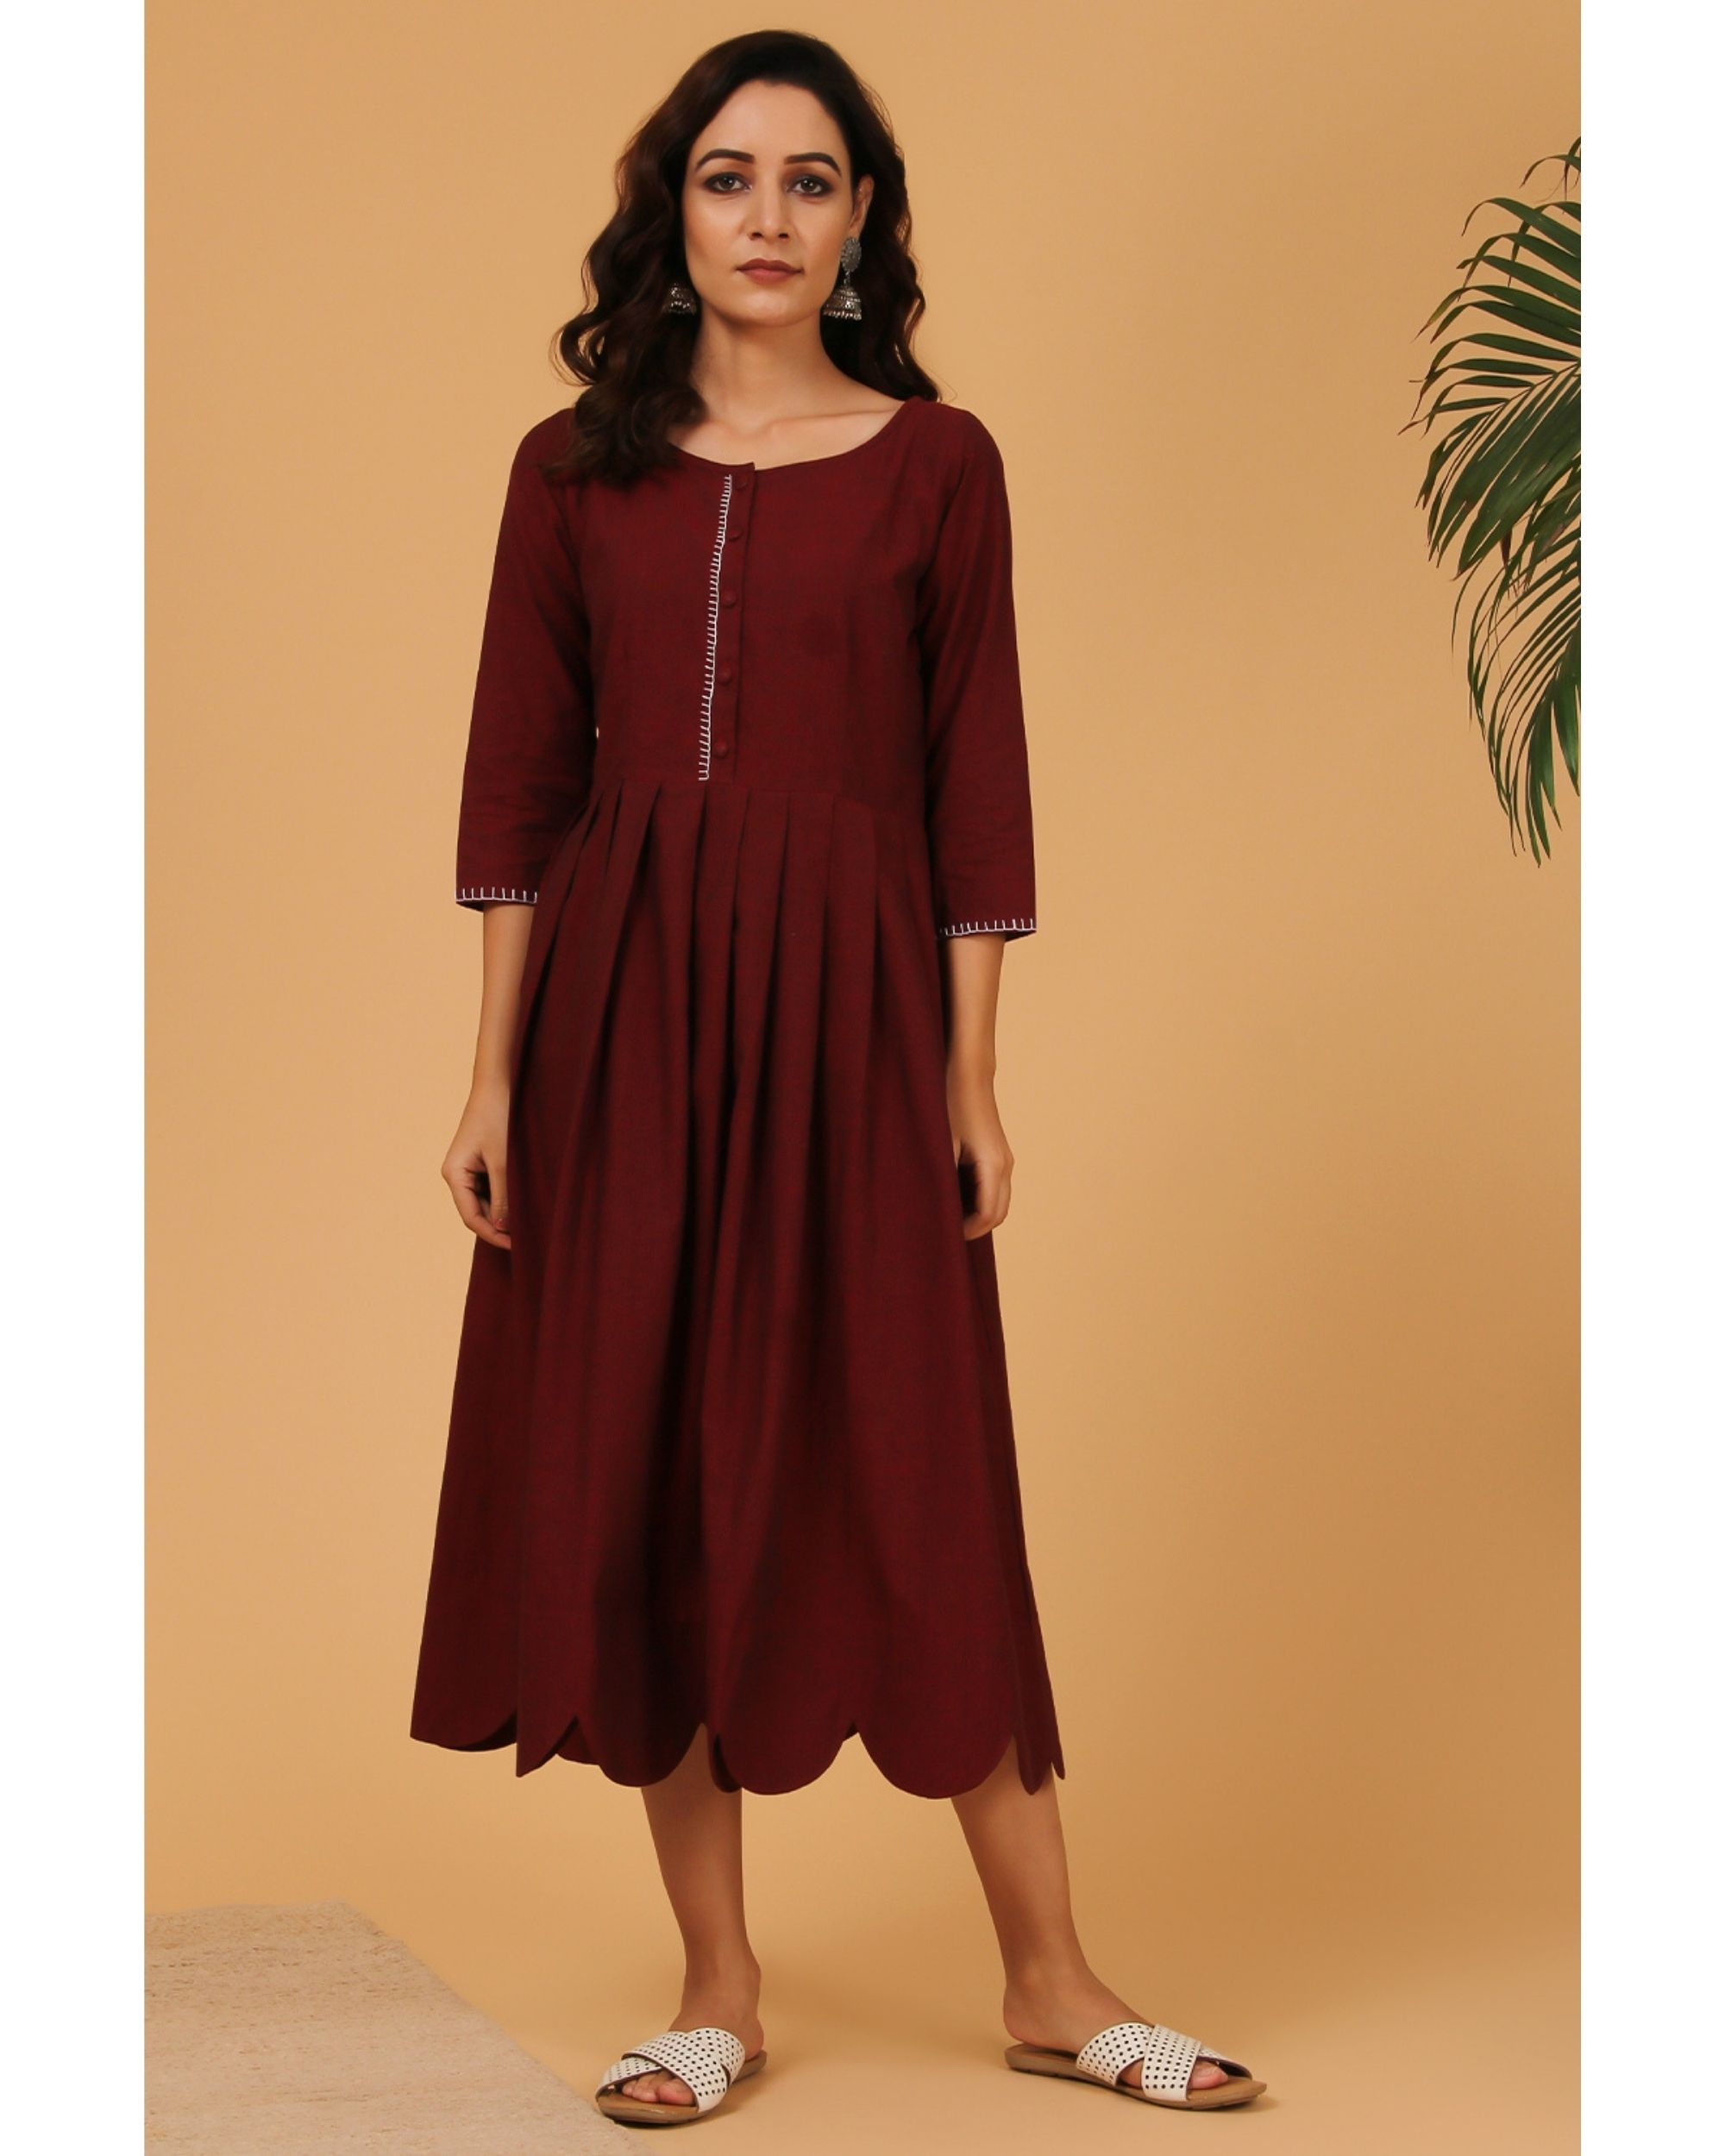 Maroon pleated scalloped dress